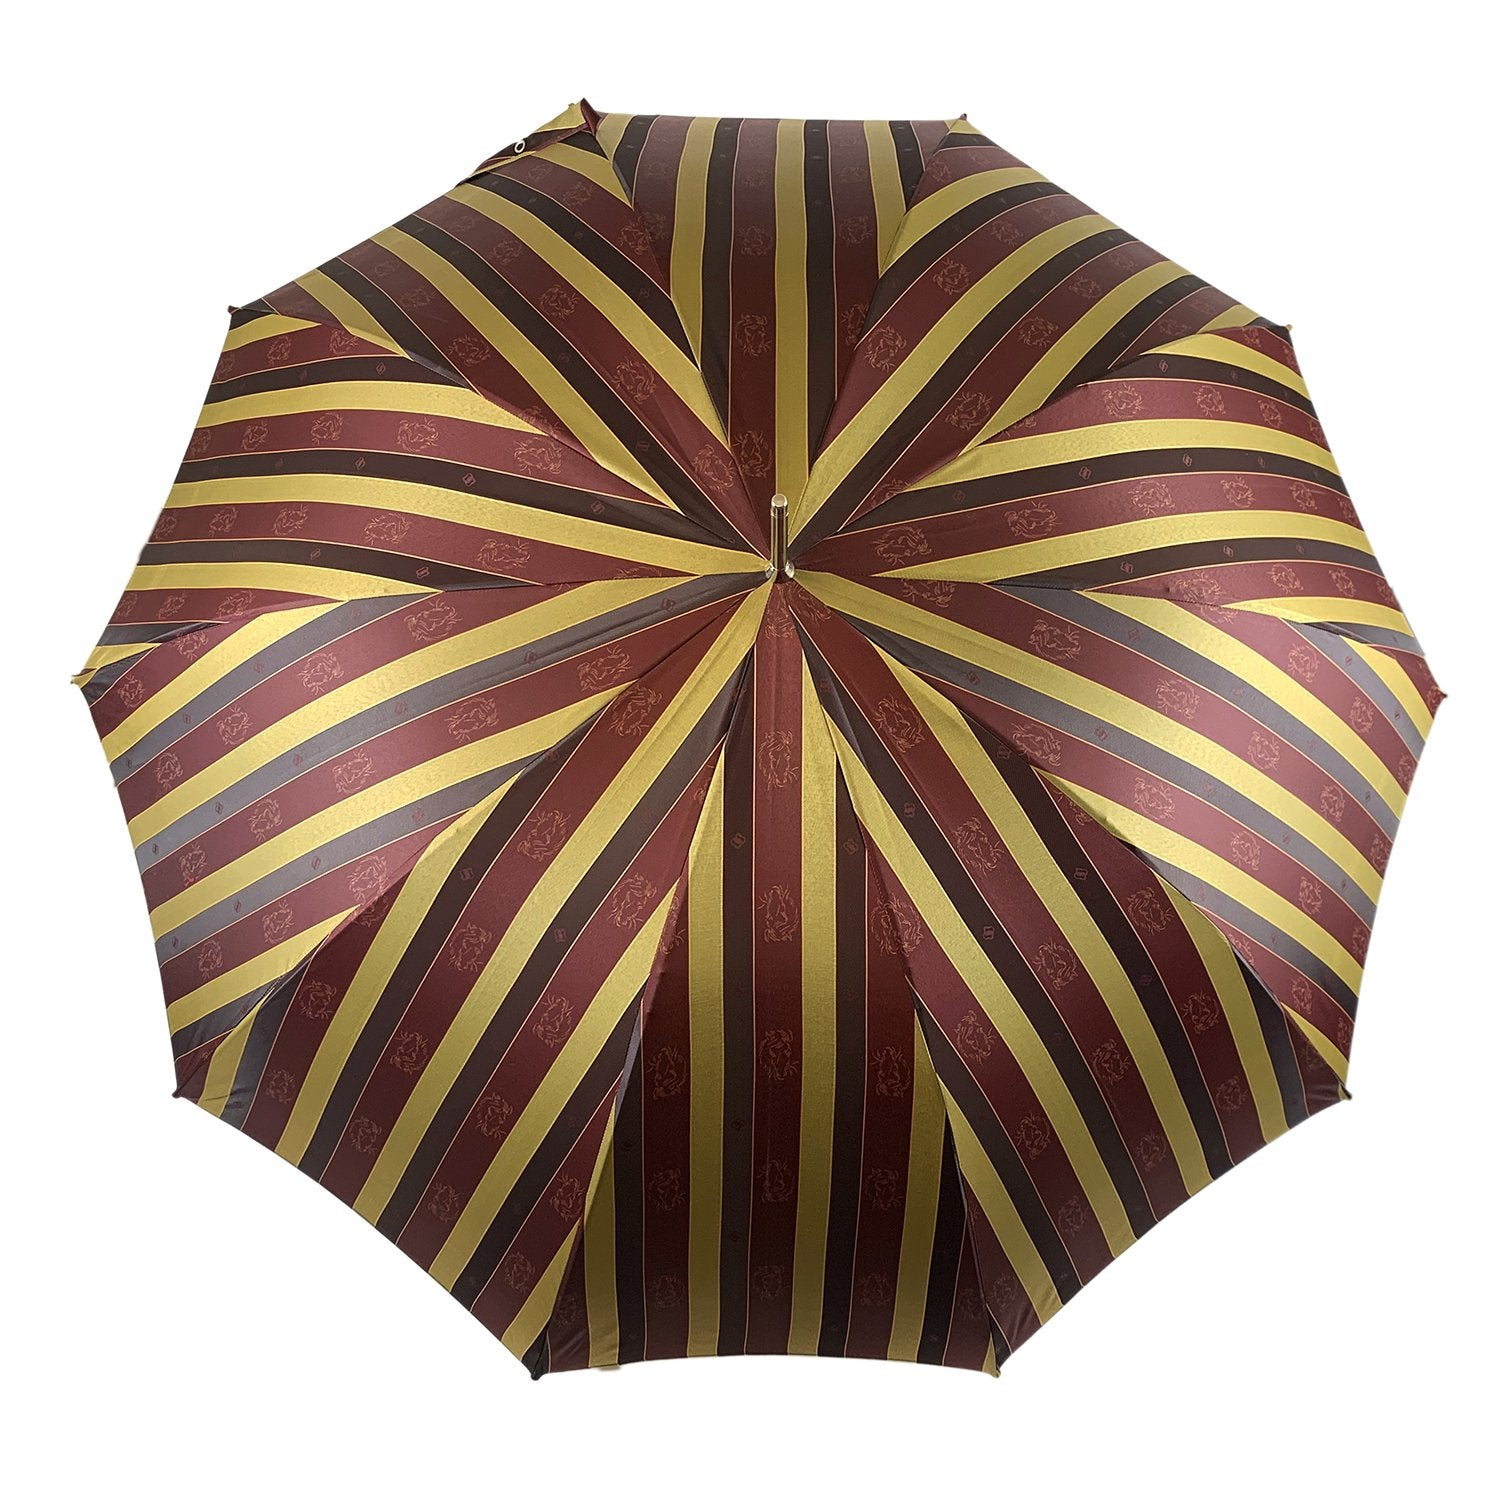 Exclusive Jacquard with embroidered Horses - IL MARCHESATO LUXURY UMBRELLAS, CANES AND SHOEHORNS